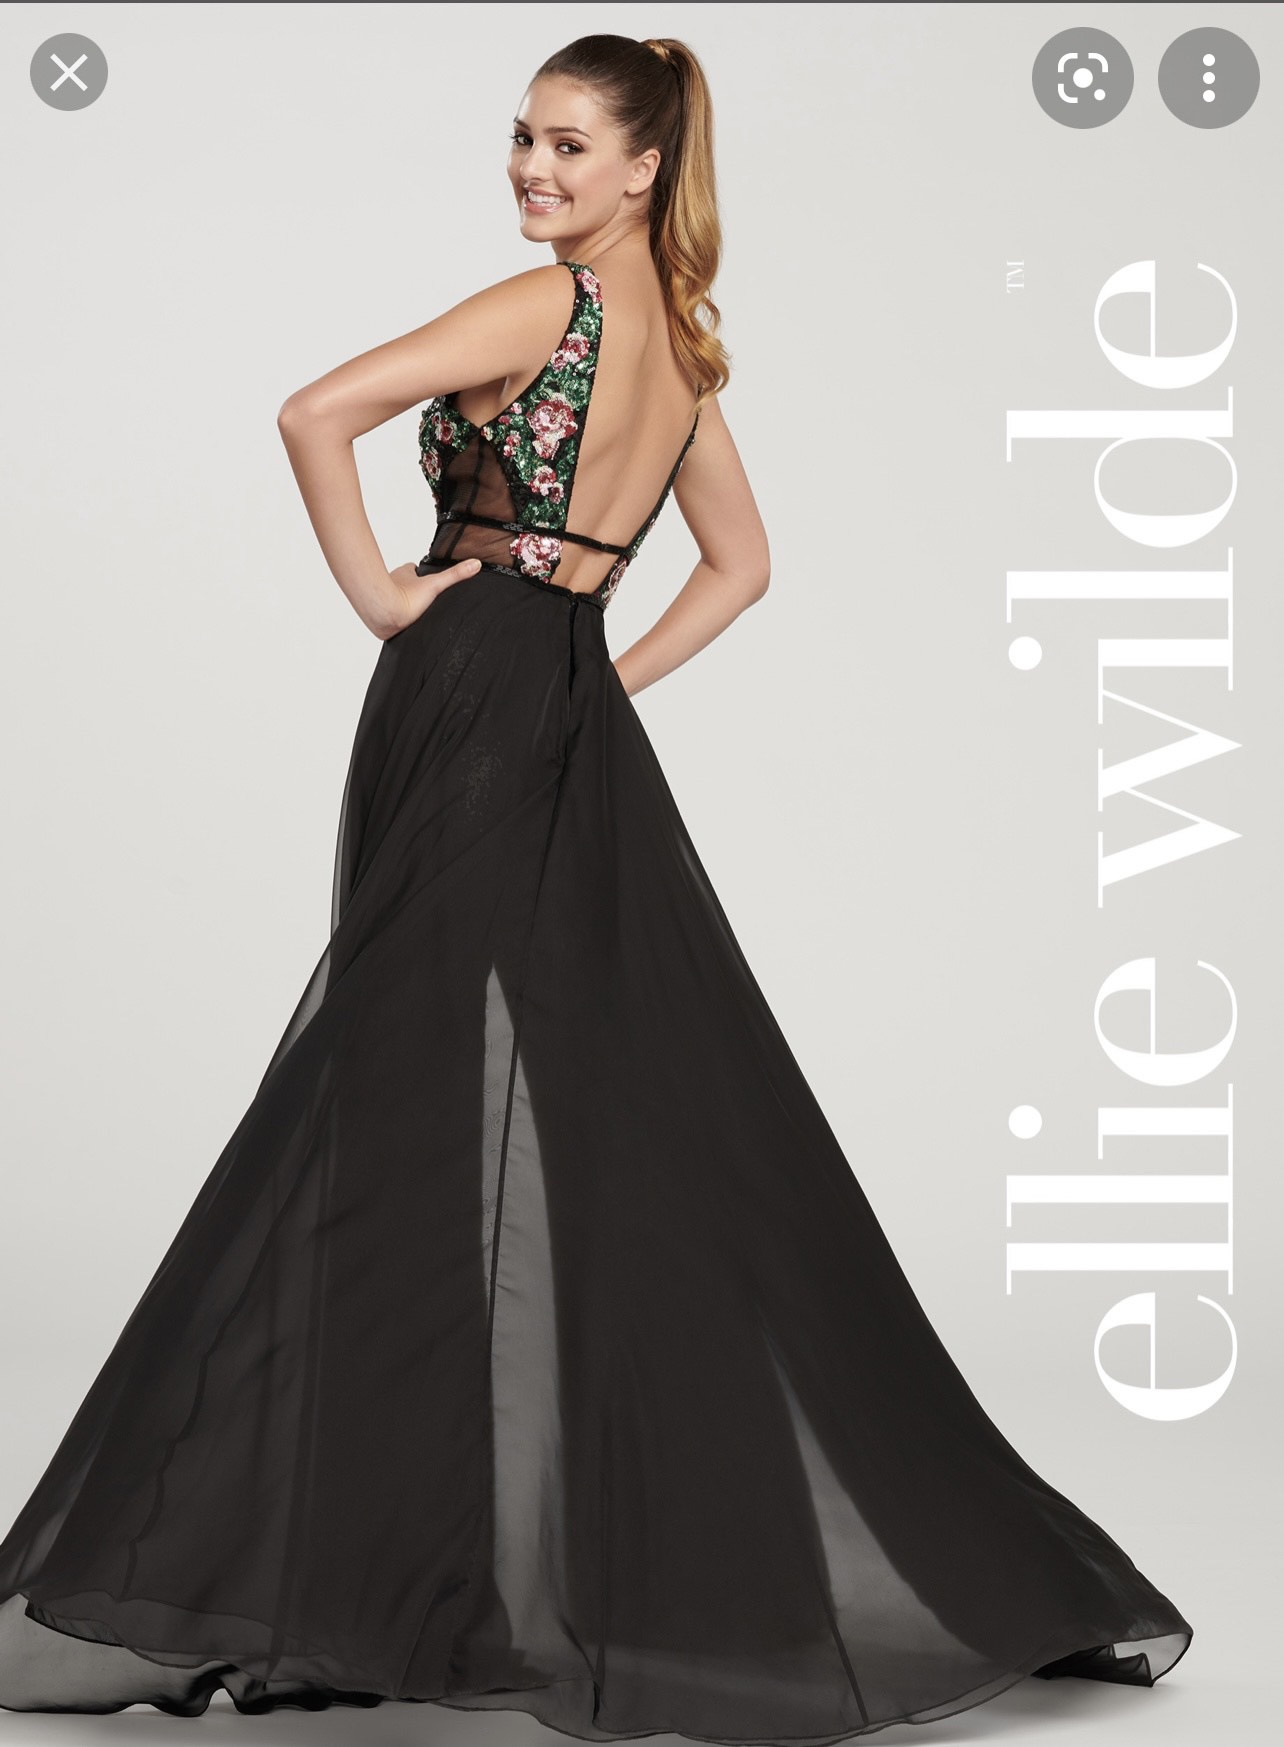 Ellie Wilde Black Size 4 Overskirt Pageant Sheer Jumpsuit Dress on Queenly